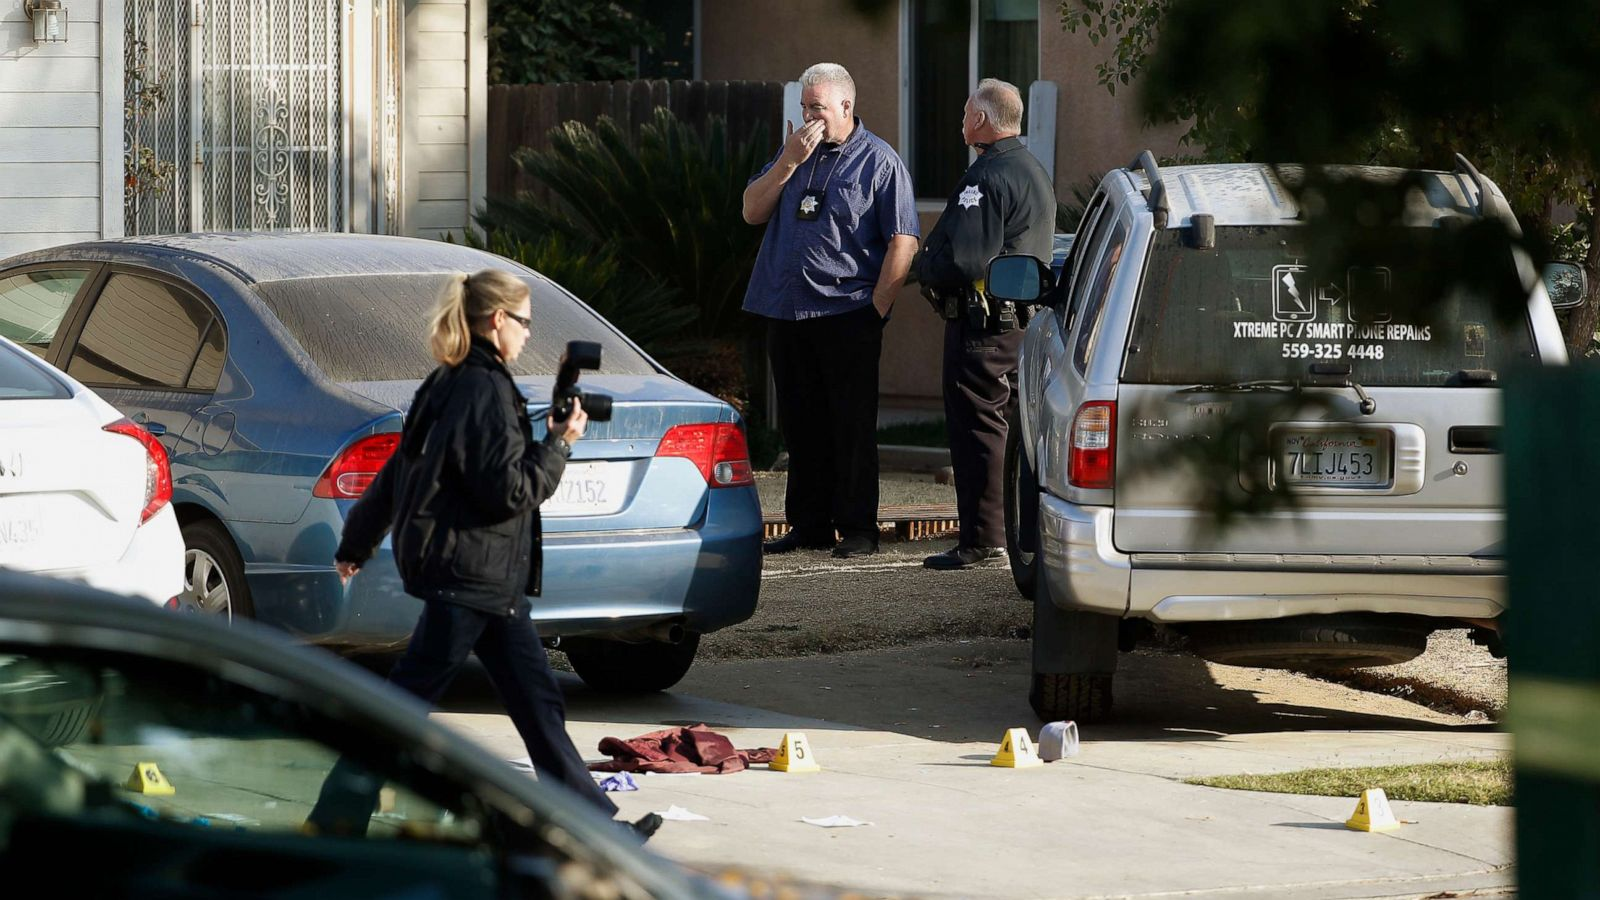 Targeted Mass Shooting In Fresno Backyard Kills 4 Injures 6 Suspects At Large Abc News